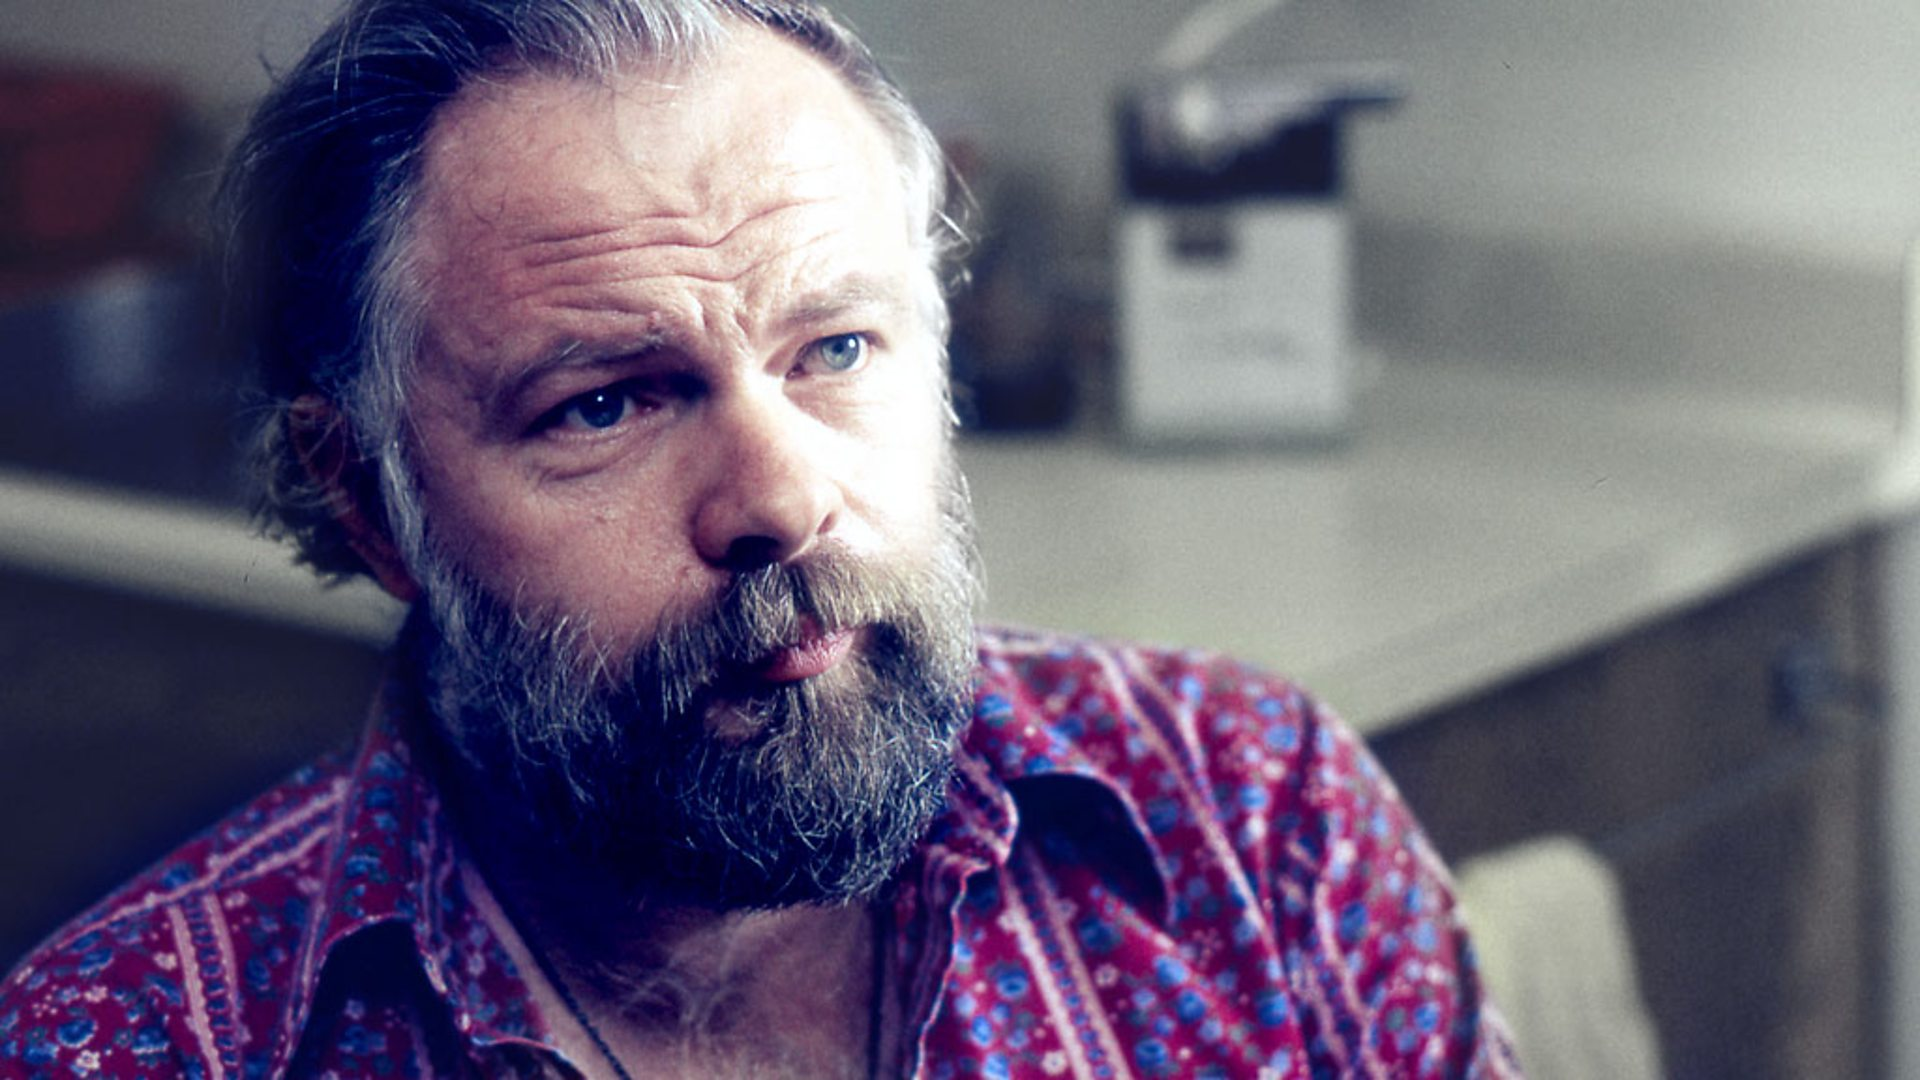 Philip D. Dick